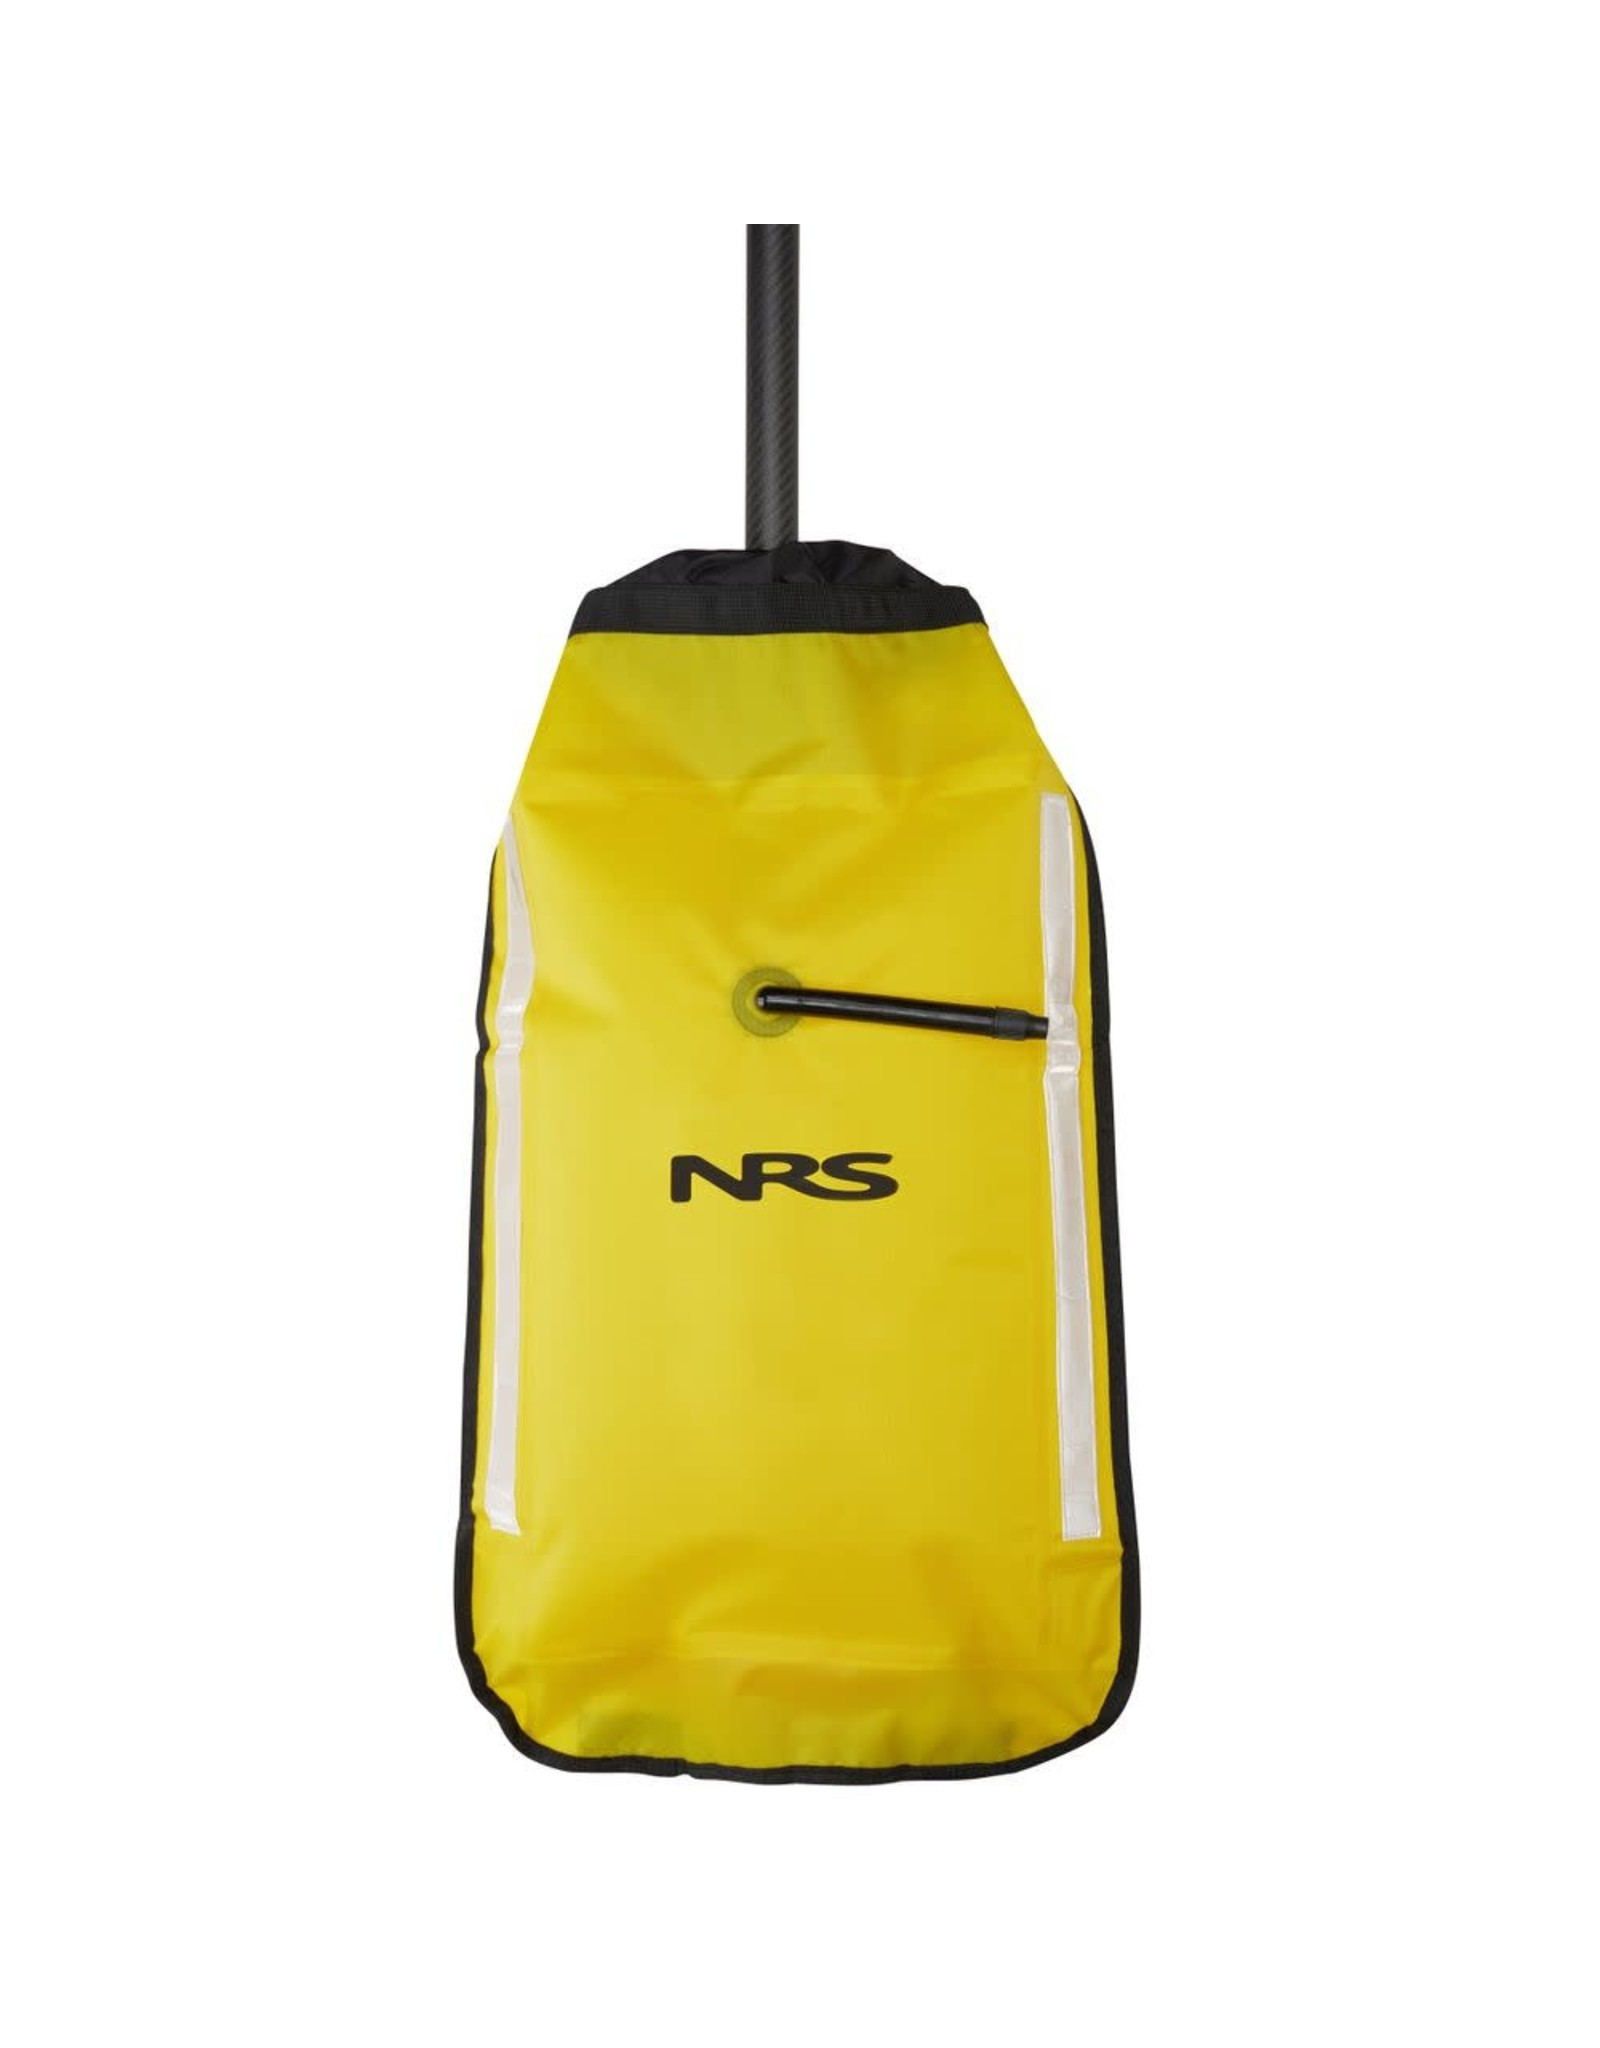 NRS NRS Sea Kayak Paddle Float